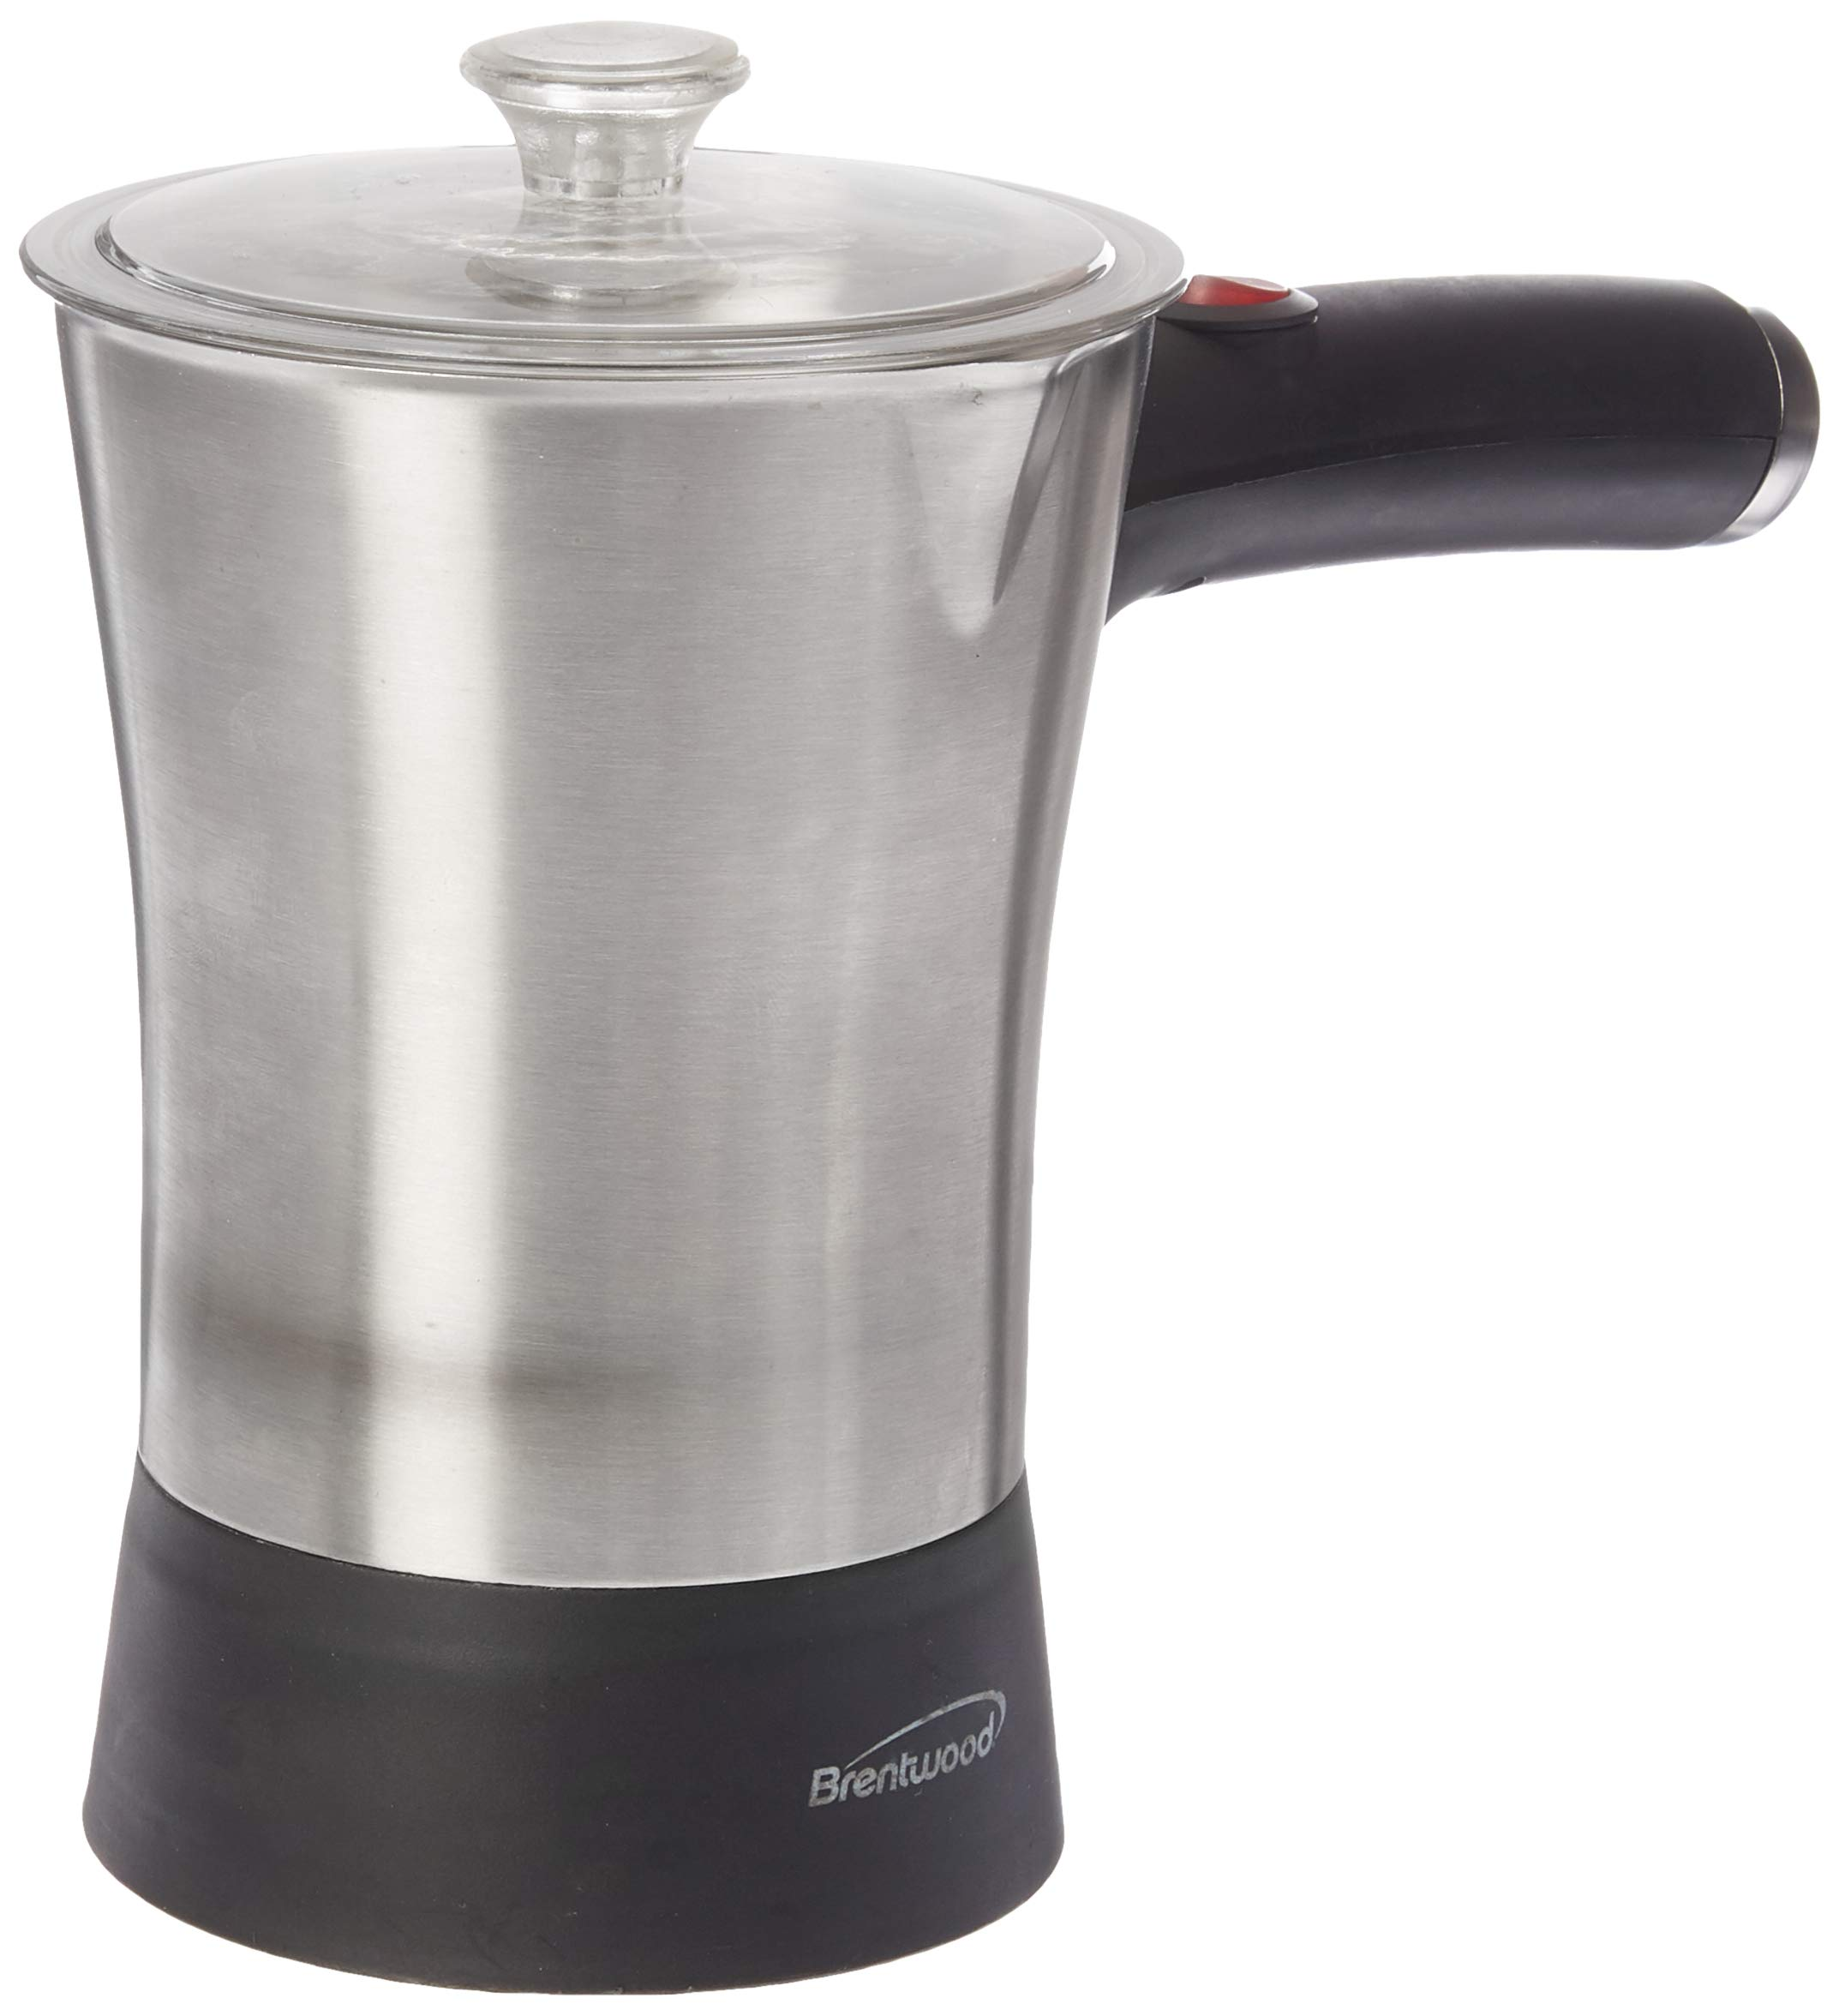 Brentwood Appliances TS-117S Electric Turkish Coffee Maker by Brentwood (Image #1)